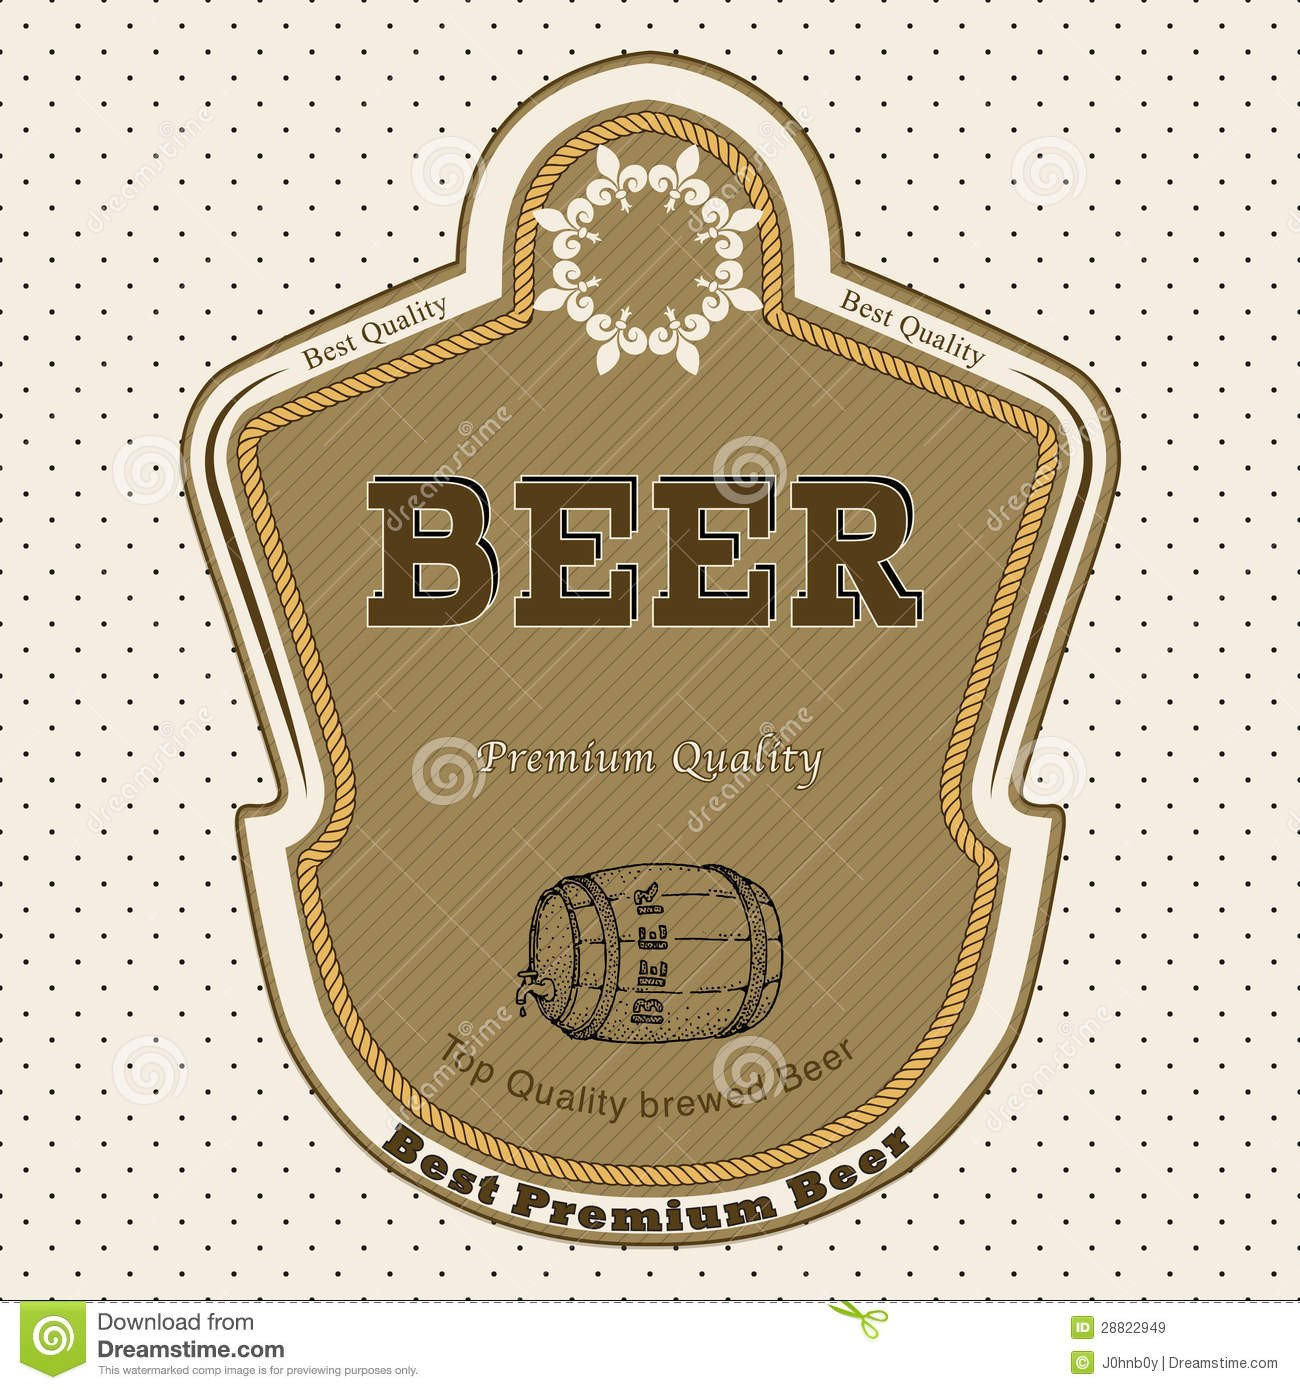 Beer Bottle Label Template Beer Label Royalty Free Stock Image